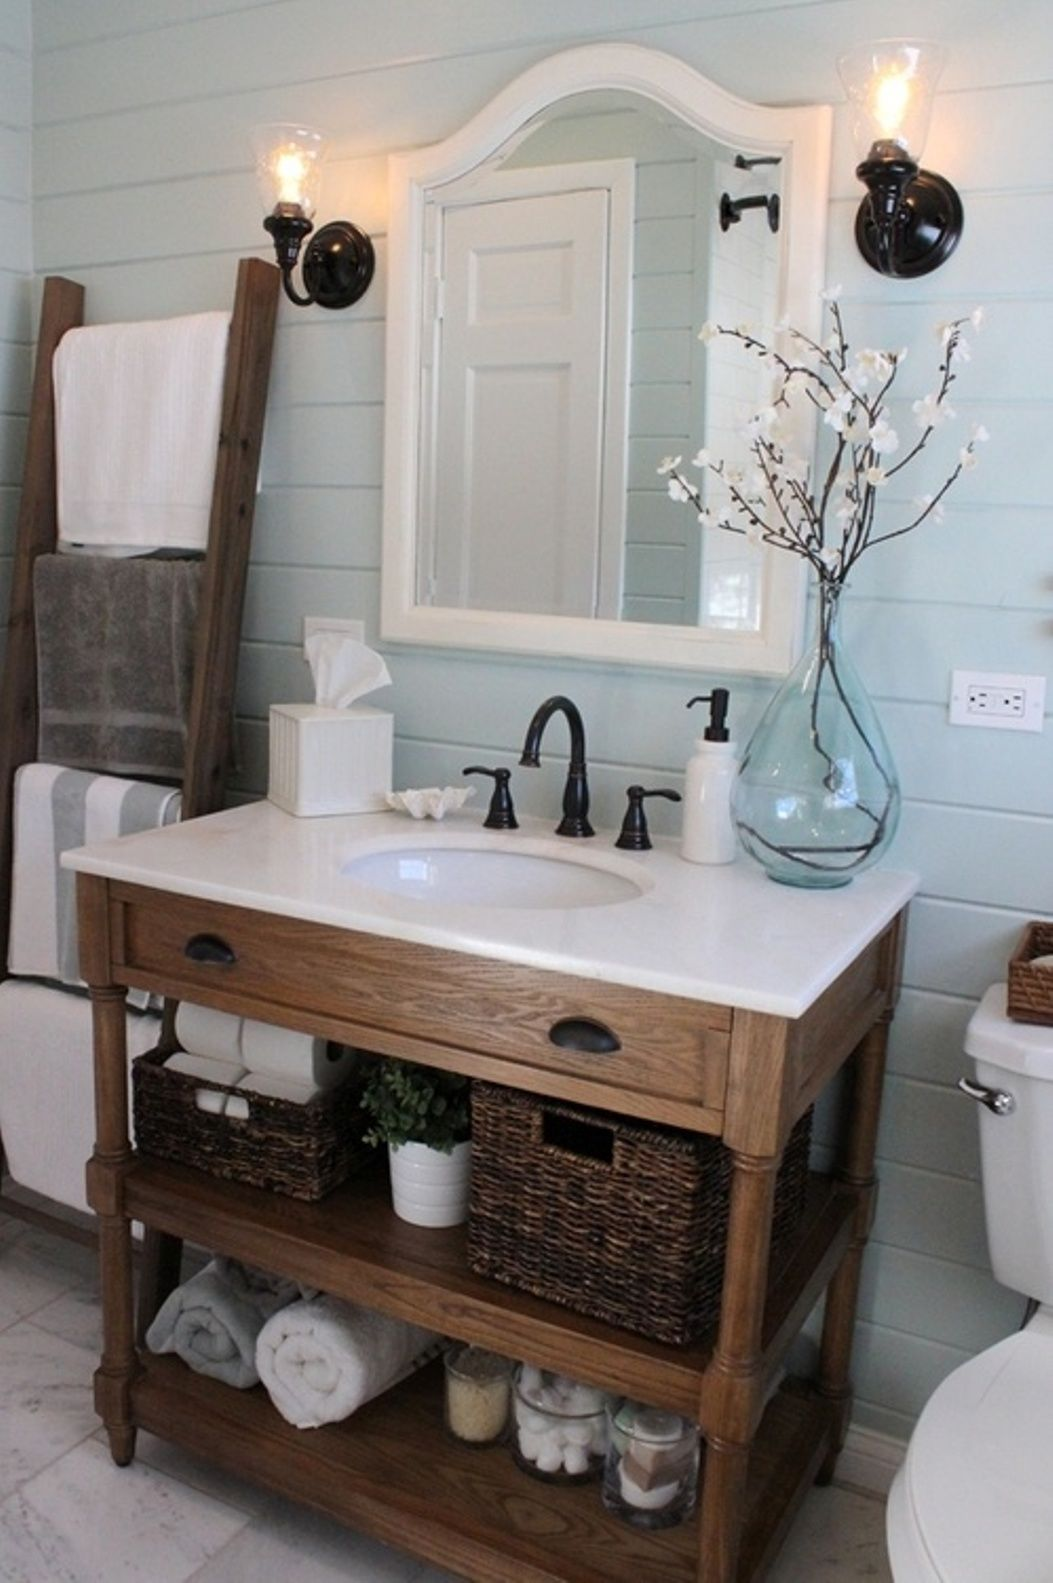 rustic bathroom design ideas 17 inspiring rustic bathroom decor ideas for cozy home style motivation 5875